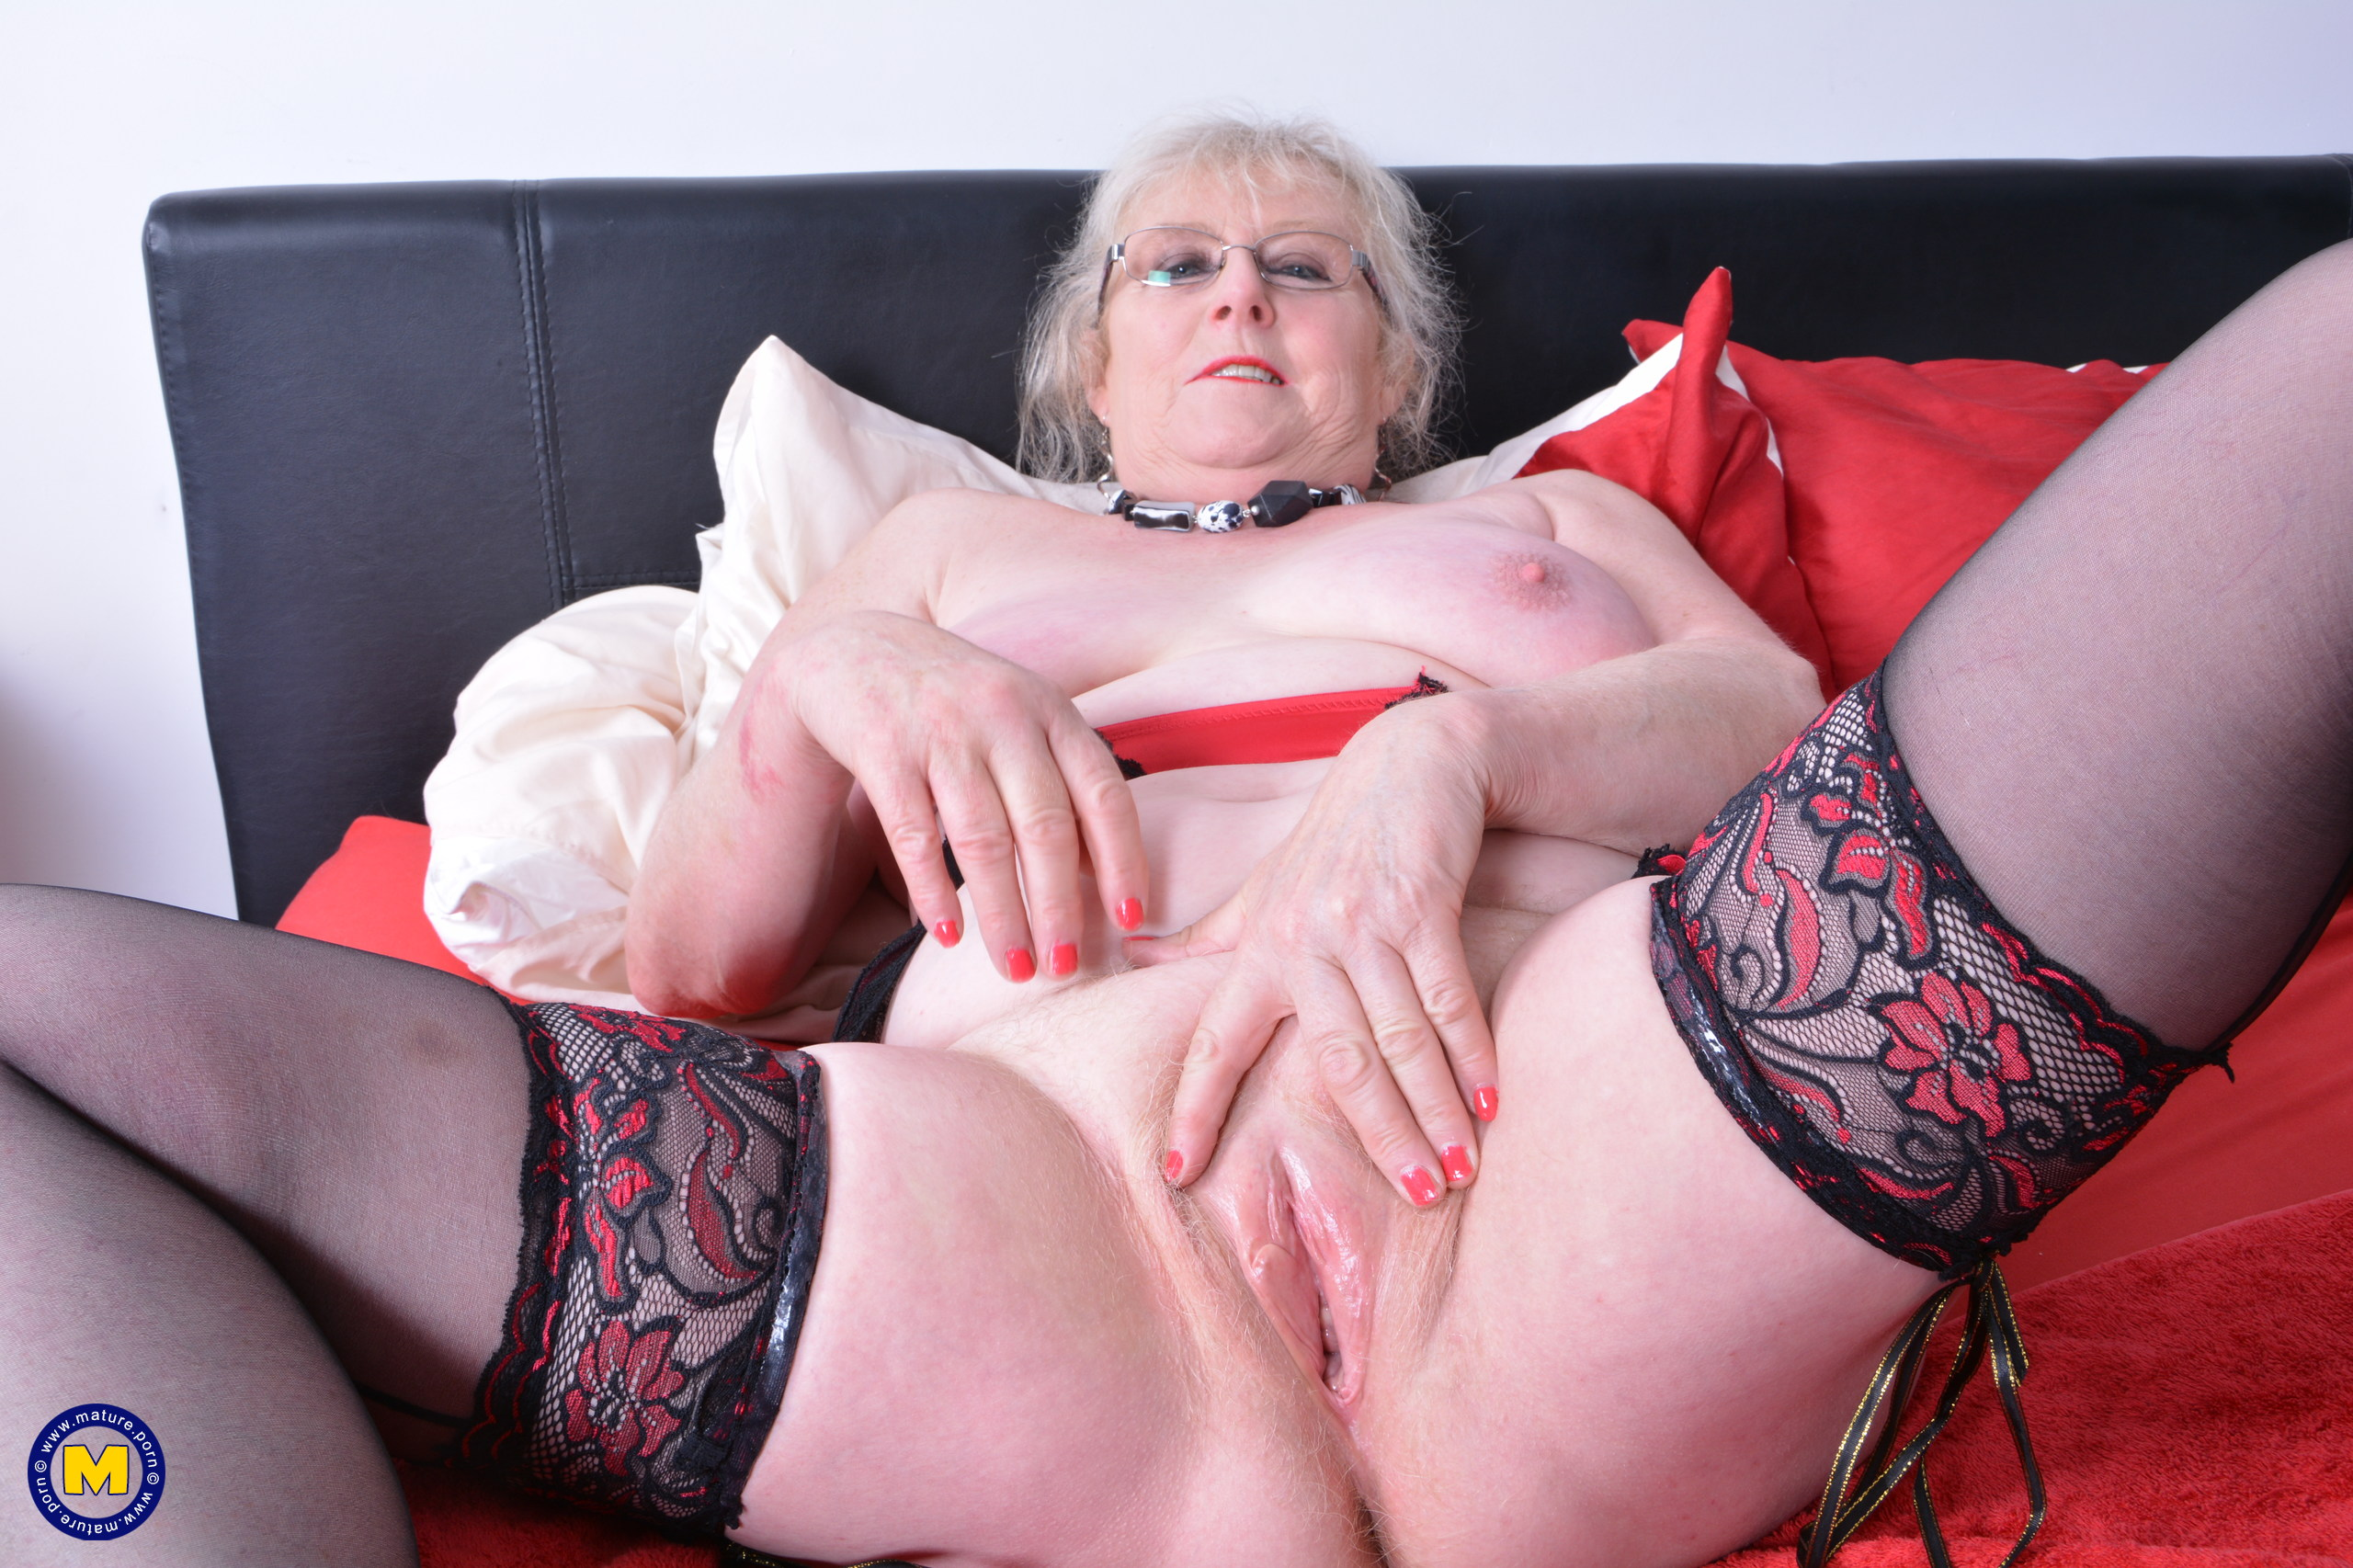 Brit plump mature nymph frolicking with herself